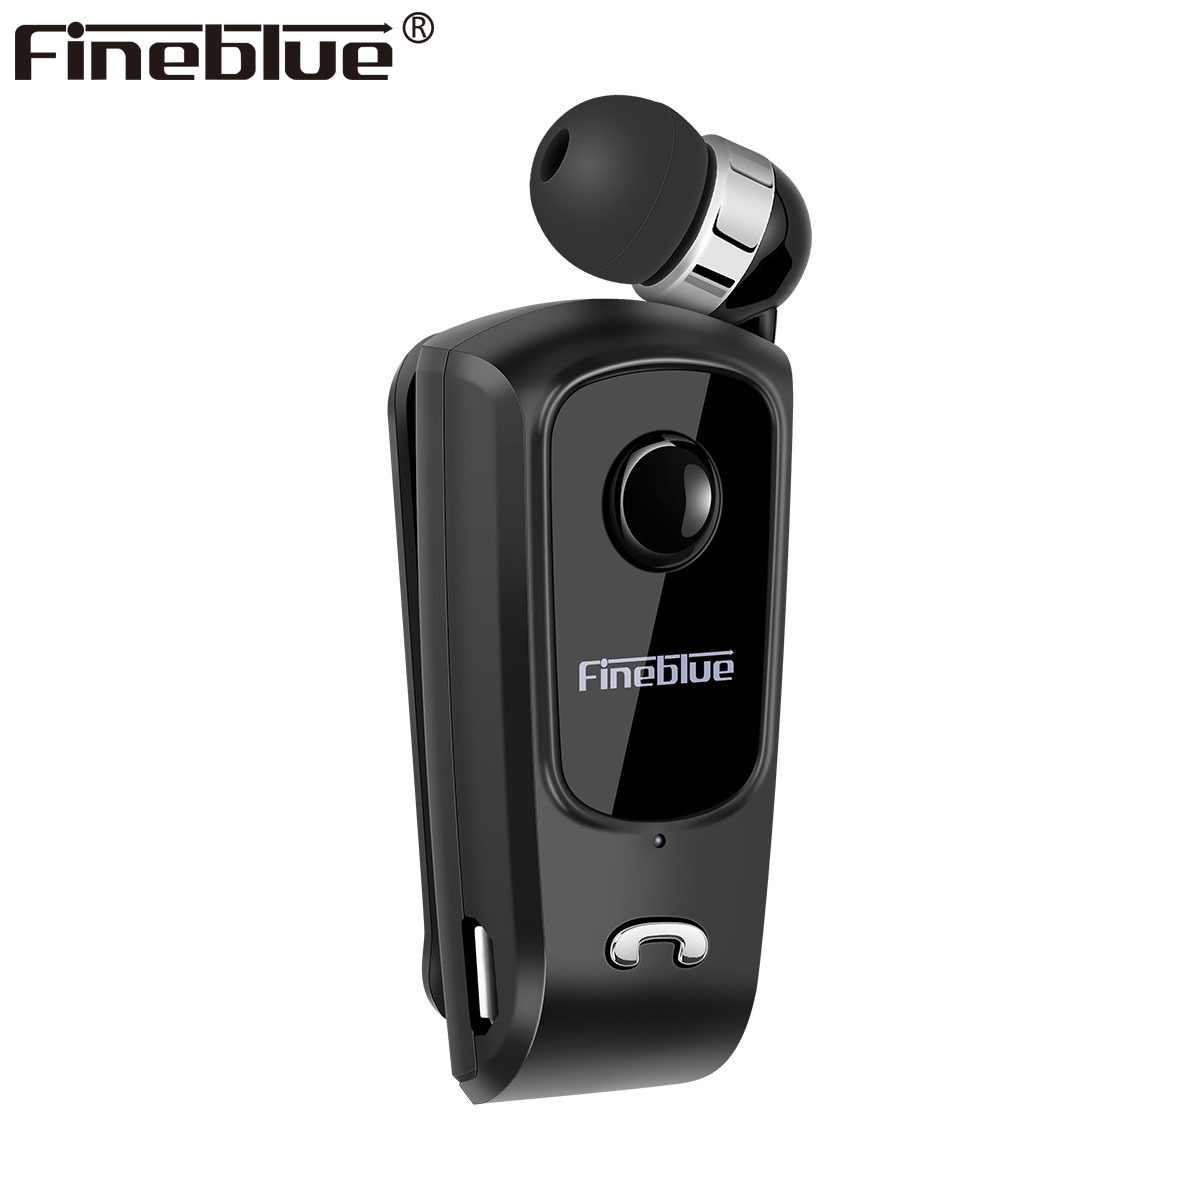 Fineblue F920 Mini Wireless Bluetooth neck clip telescopic type business Earphone Vibration Alert Wear Stereo Sport Auriculares